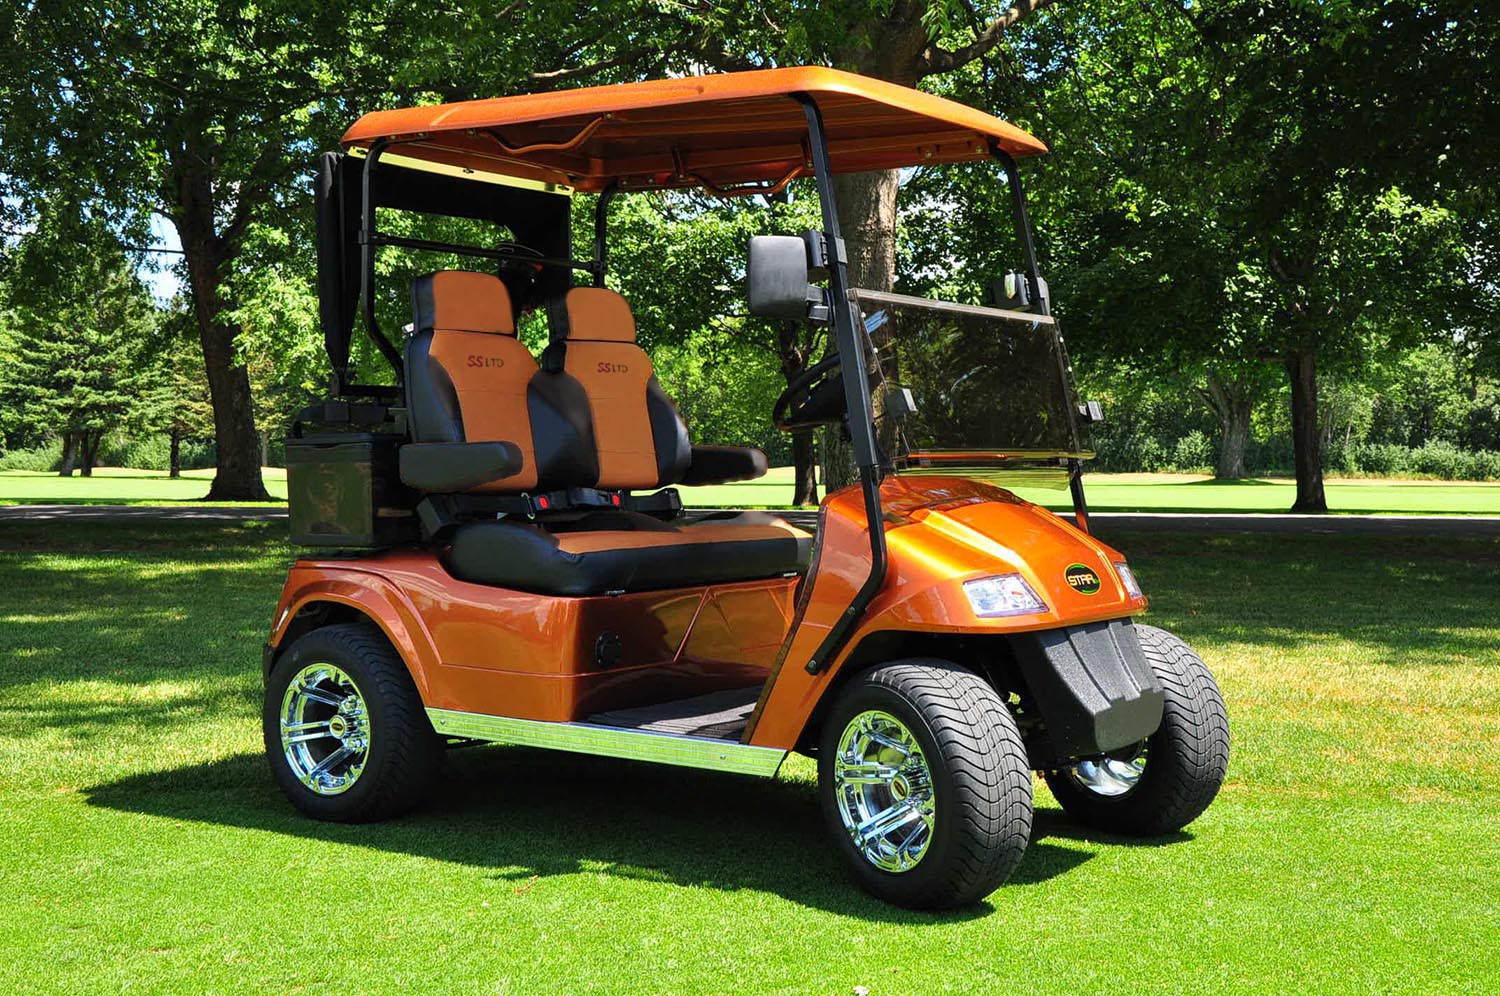 Yamaha Efi Golf Cart Review